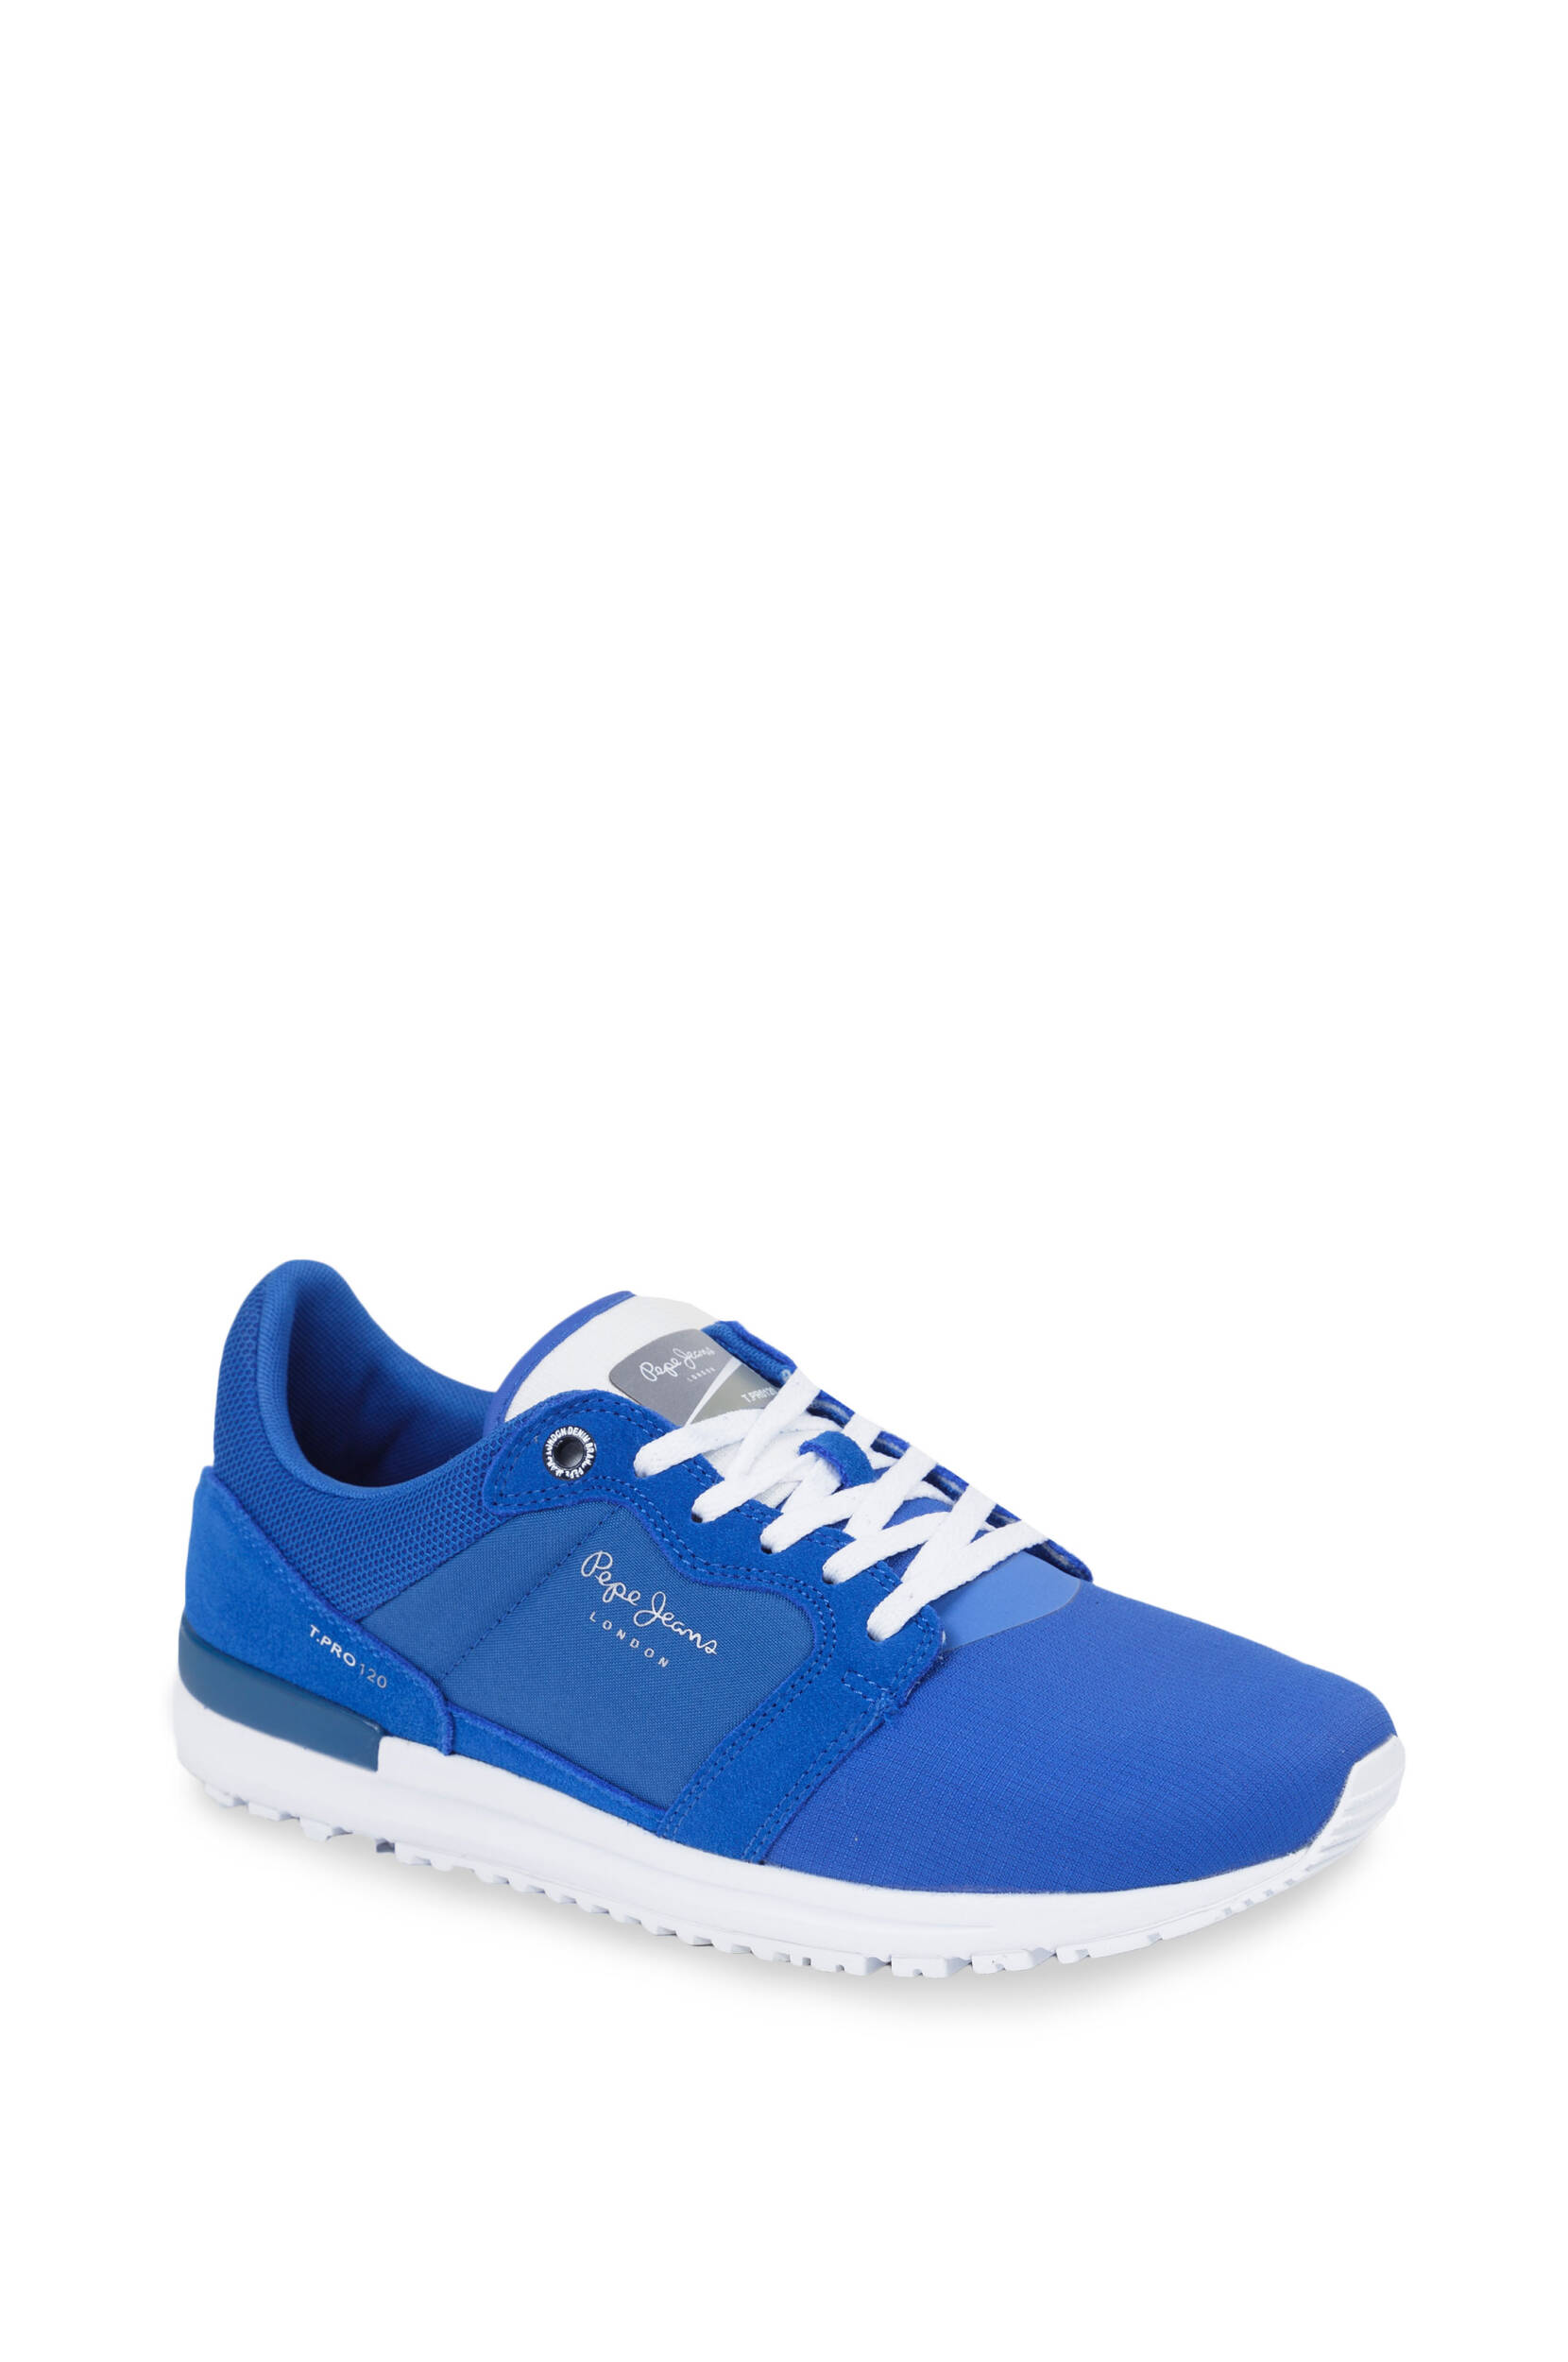 bee3e83c31b Tinker Pro 120 sneakers Pepe Jeans London | Blue | Gomez.pl/en